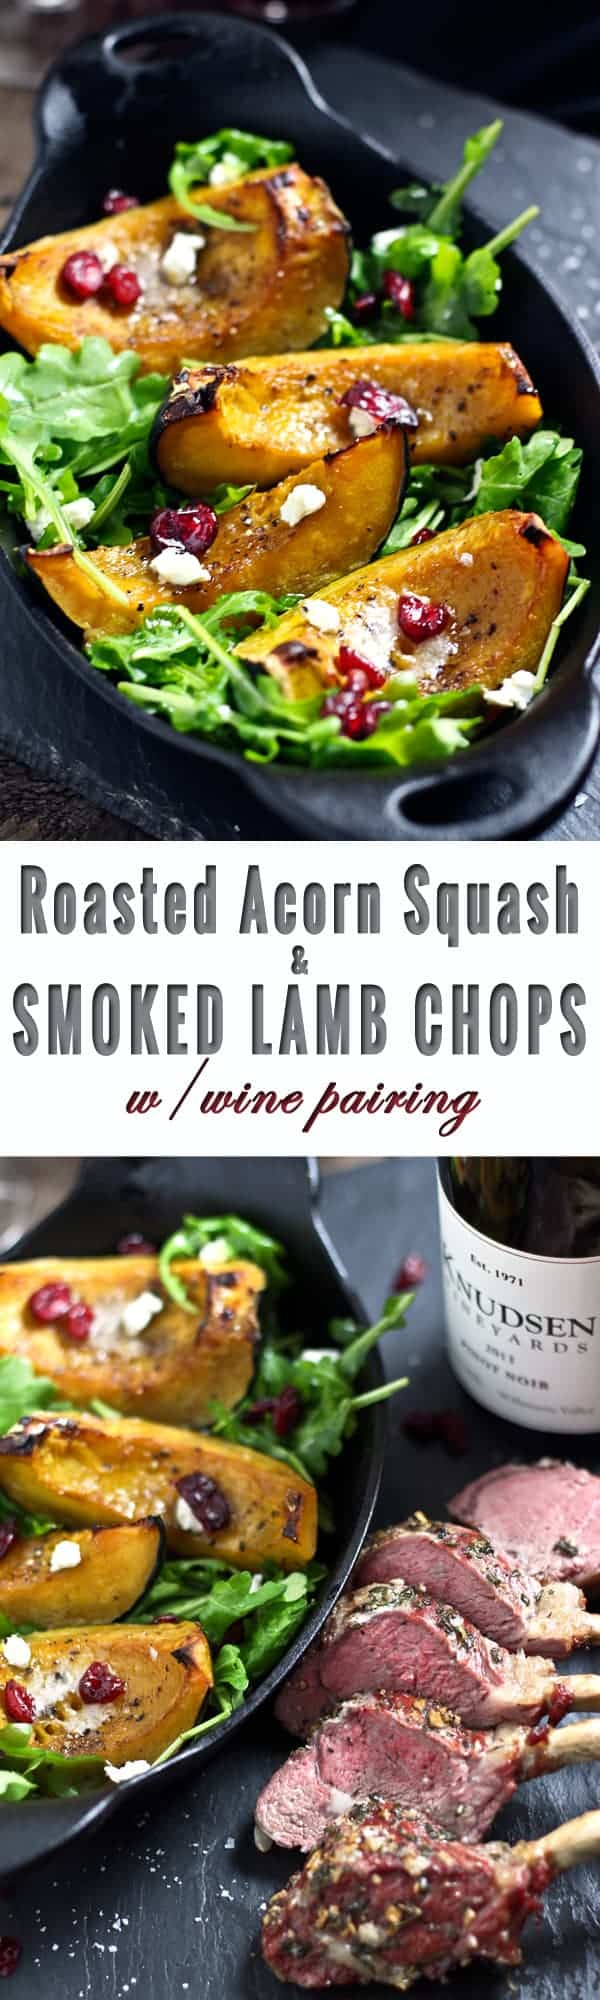 Roasted Acorn Squash Salad and Smoked Lamb Chops. The perfect and easy date night dinner, or double or triple to make an elegant dinner party meal! Comes with one of my favorite wine pairing recommendations. This squash salad would also be the most amazing Thanksgiving side dish!! So good!